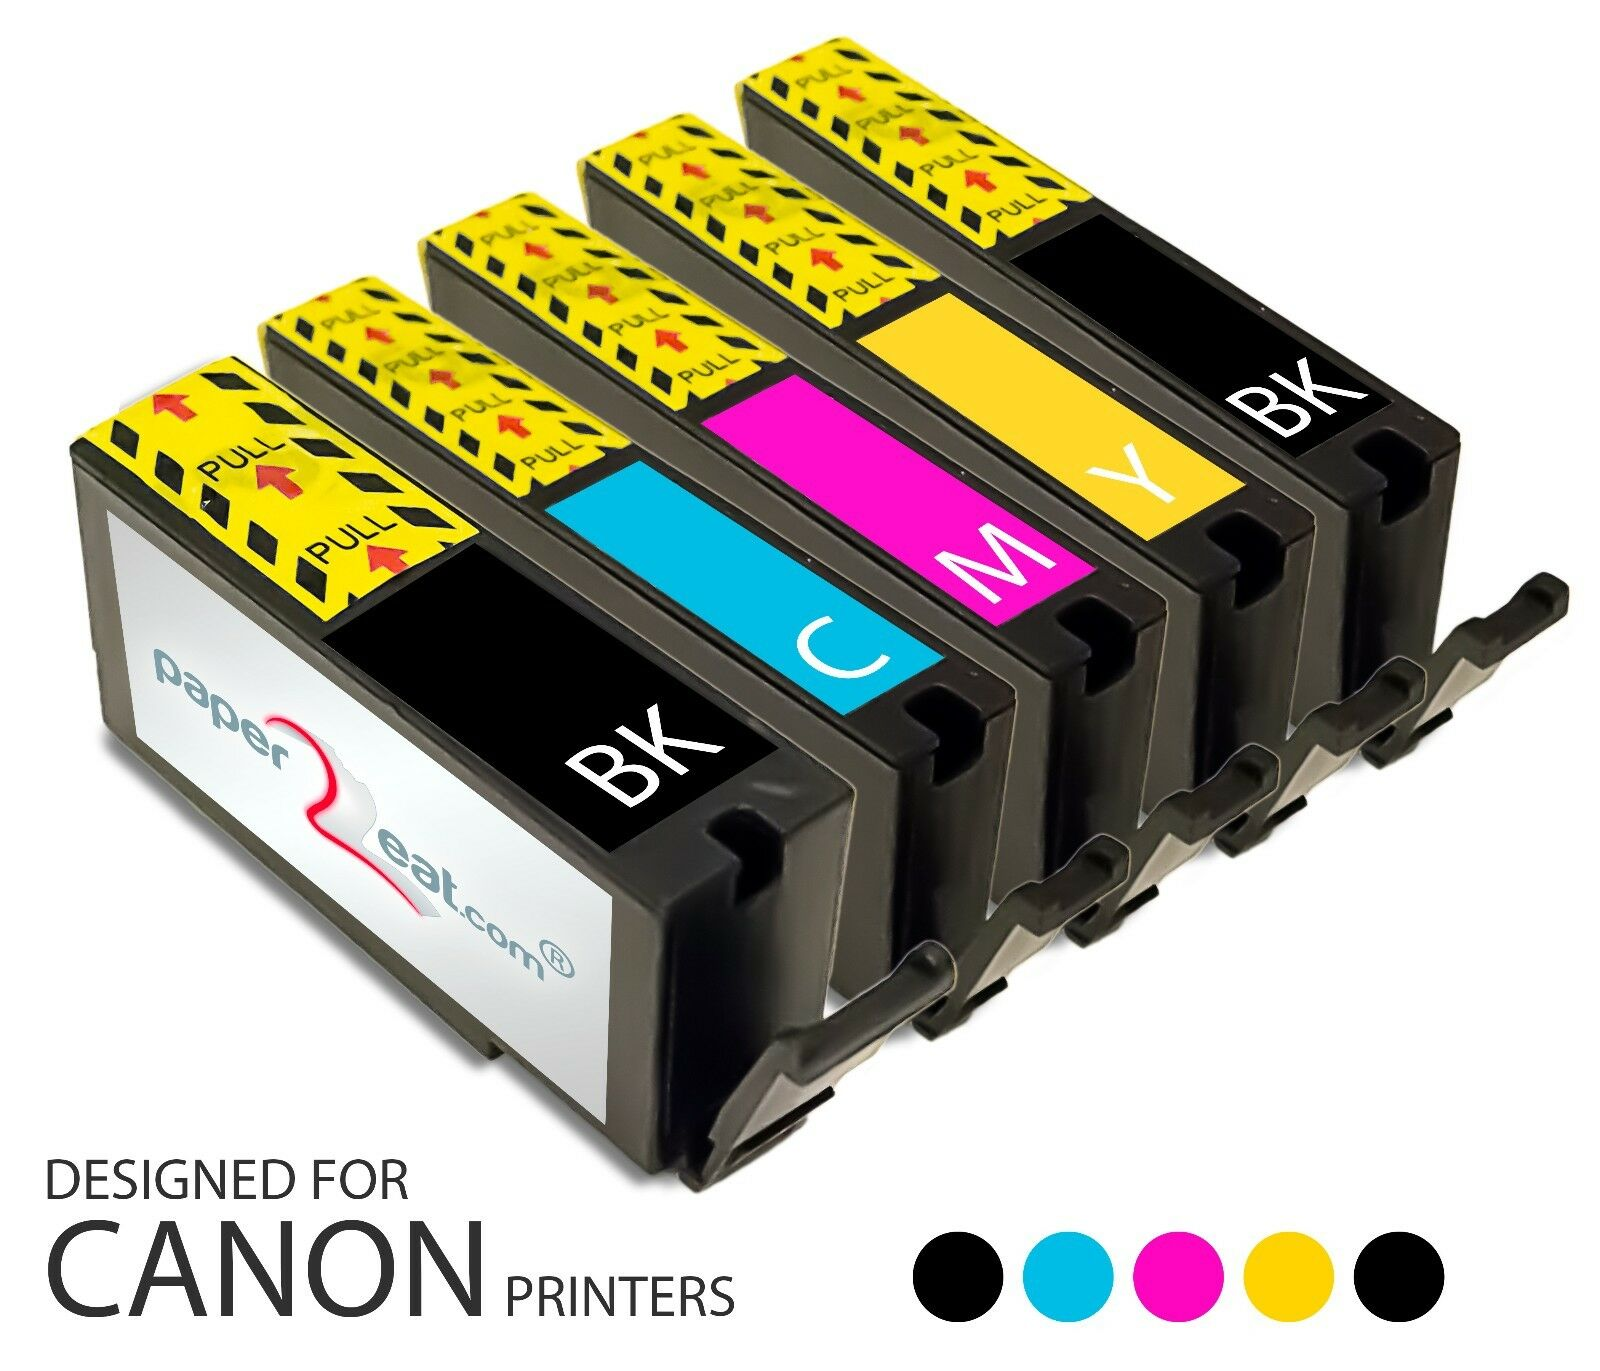 Set of 5 Refillable Edible Ink Cartridges Canon MG7520 PGI-250   CLI-251 Series